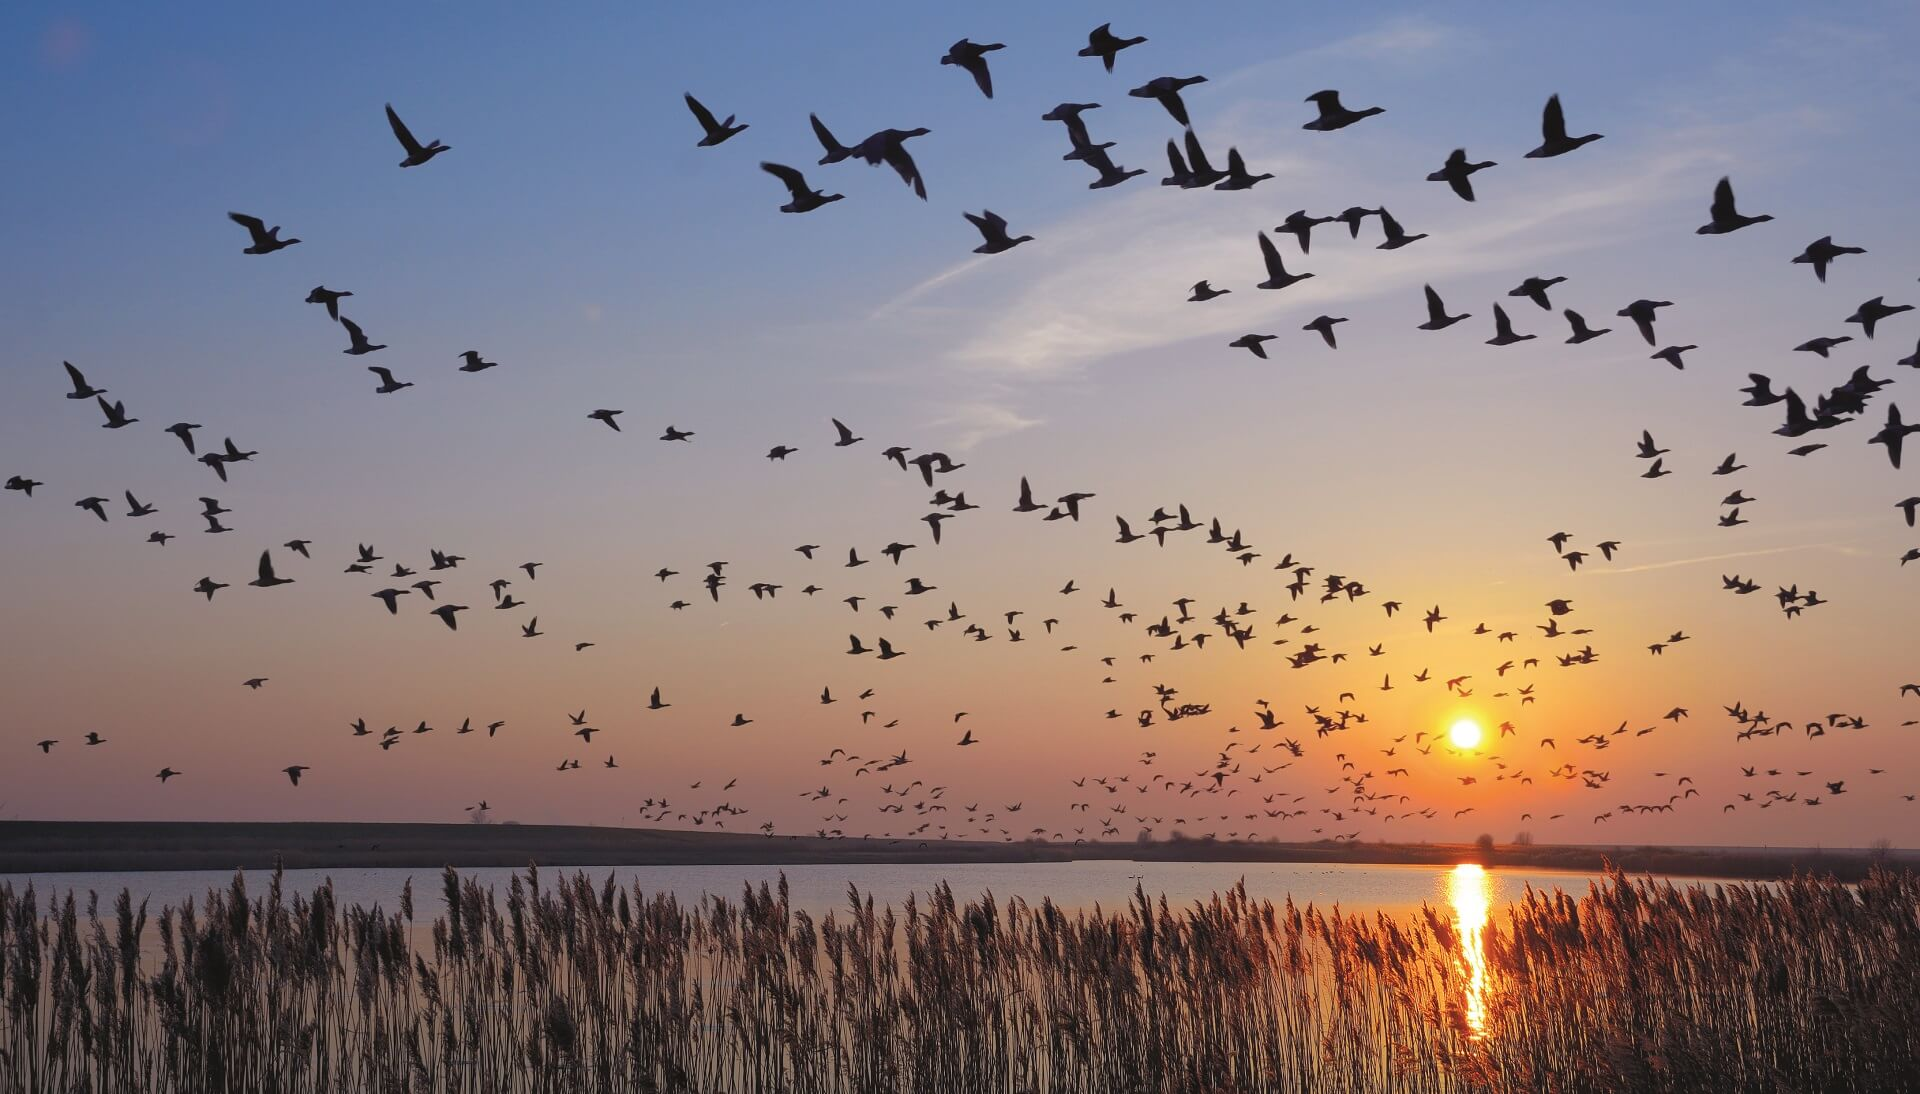 12 million waterbirds can be found at the Wadden Sea © Travelpeter / Shutterstock